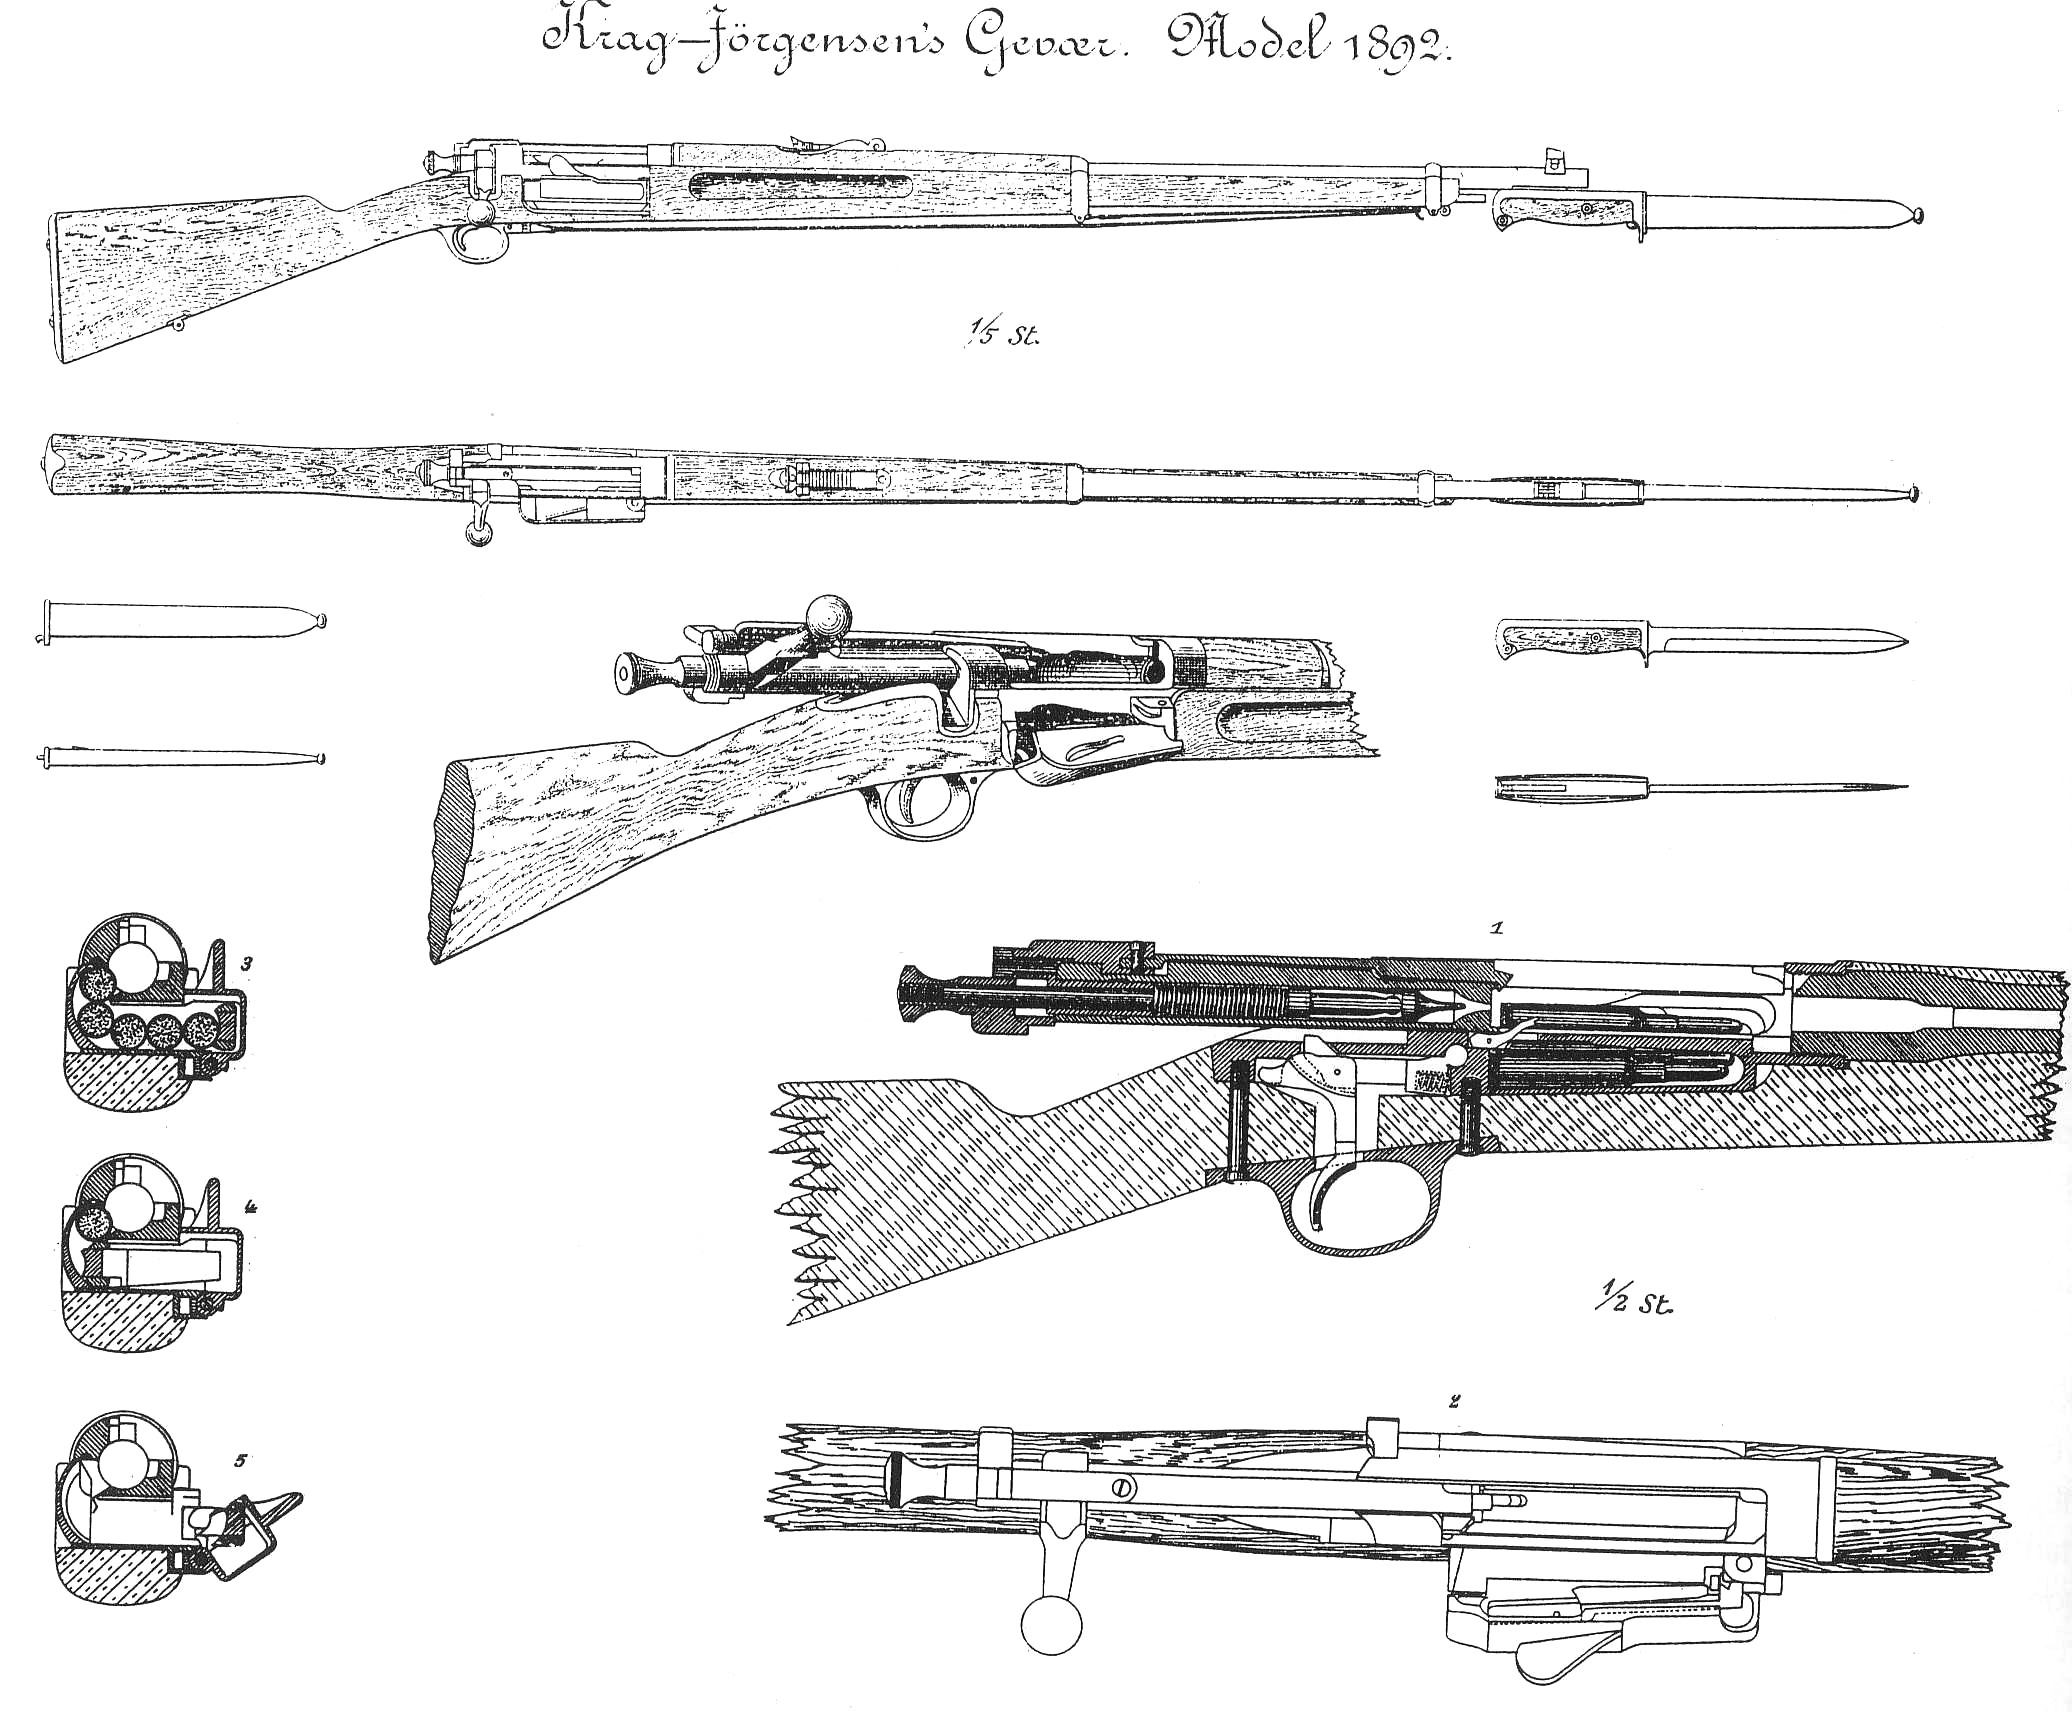 Krag_Jørgensen_M1892_as_tested.jpg